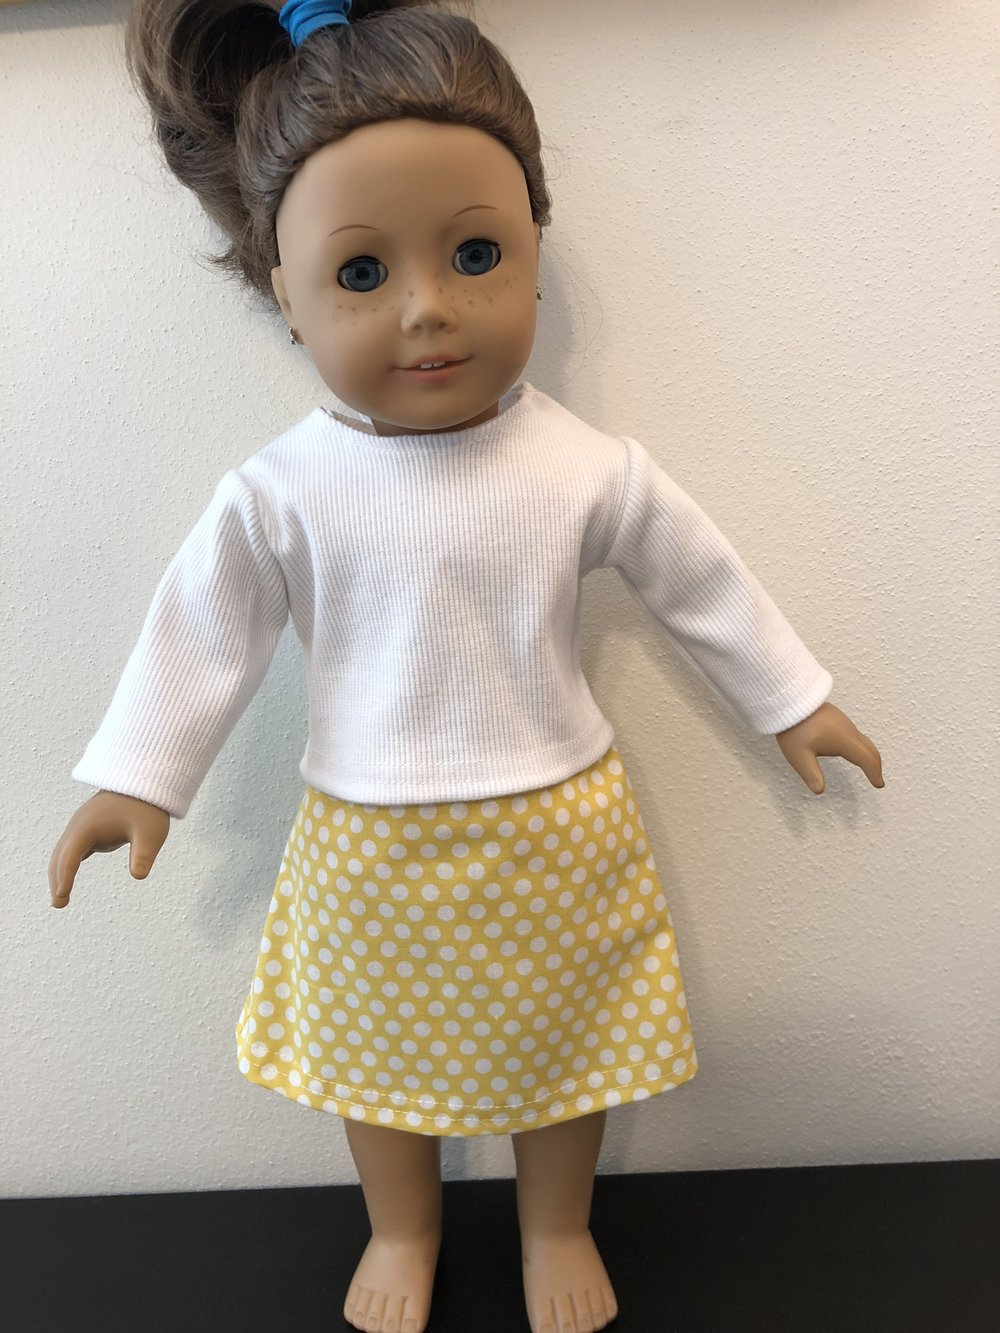 Rib knit shirt with yellow polka dot skirt